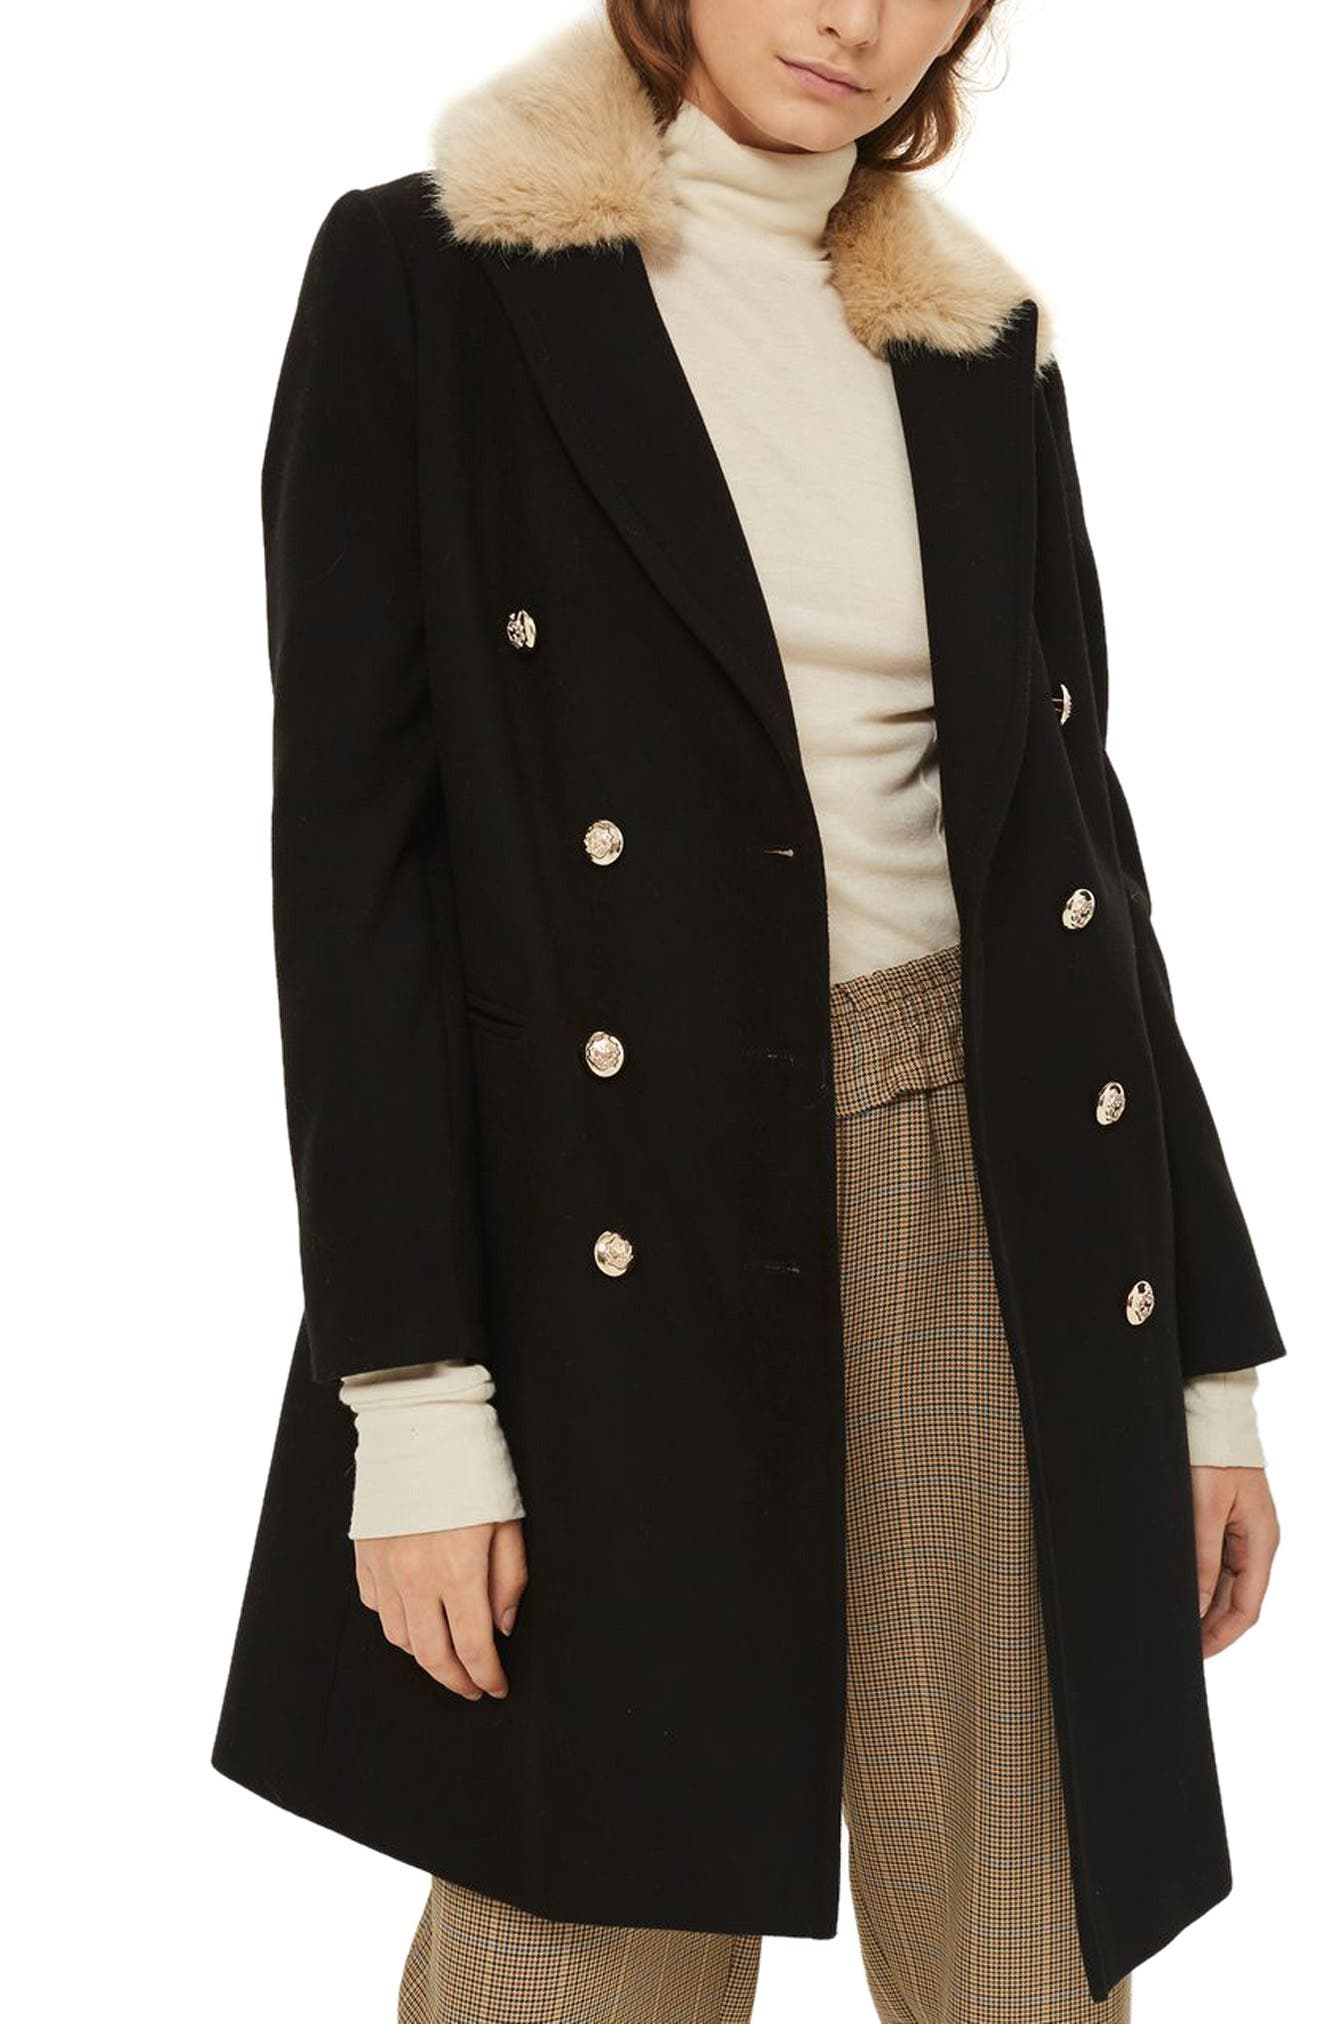 Topshop Nina Faux Fur Collar Double Breasted Coat